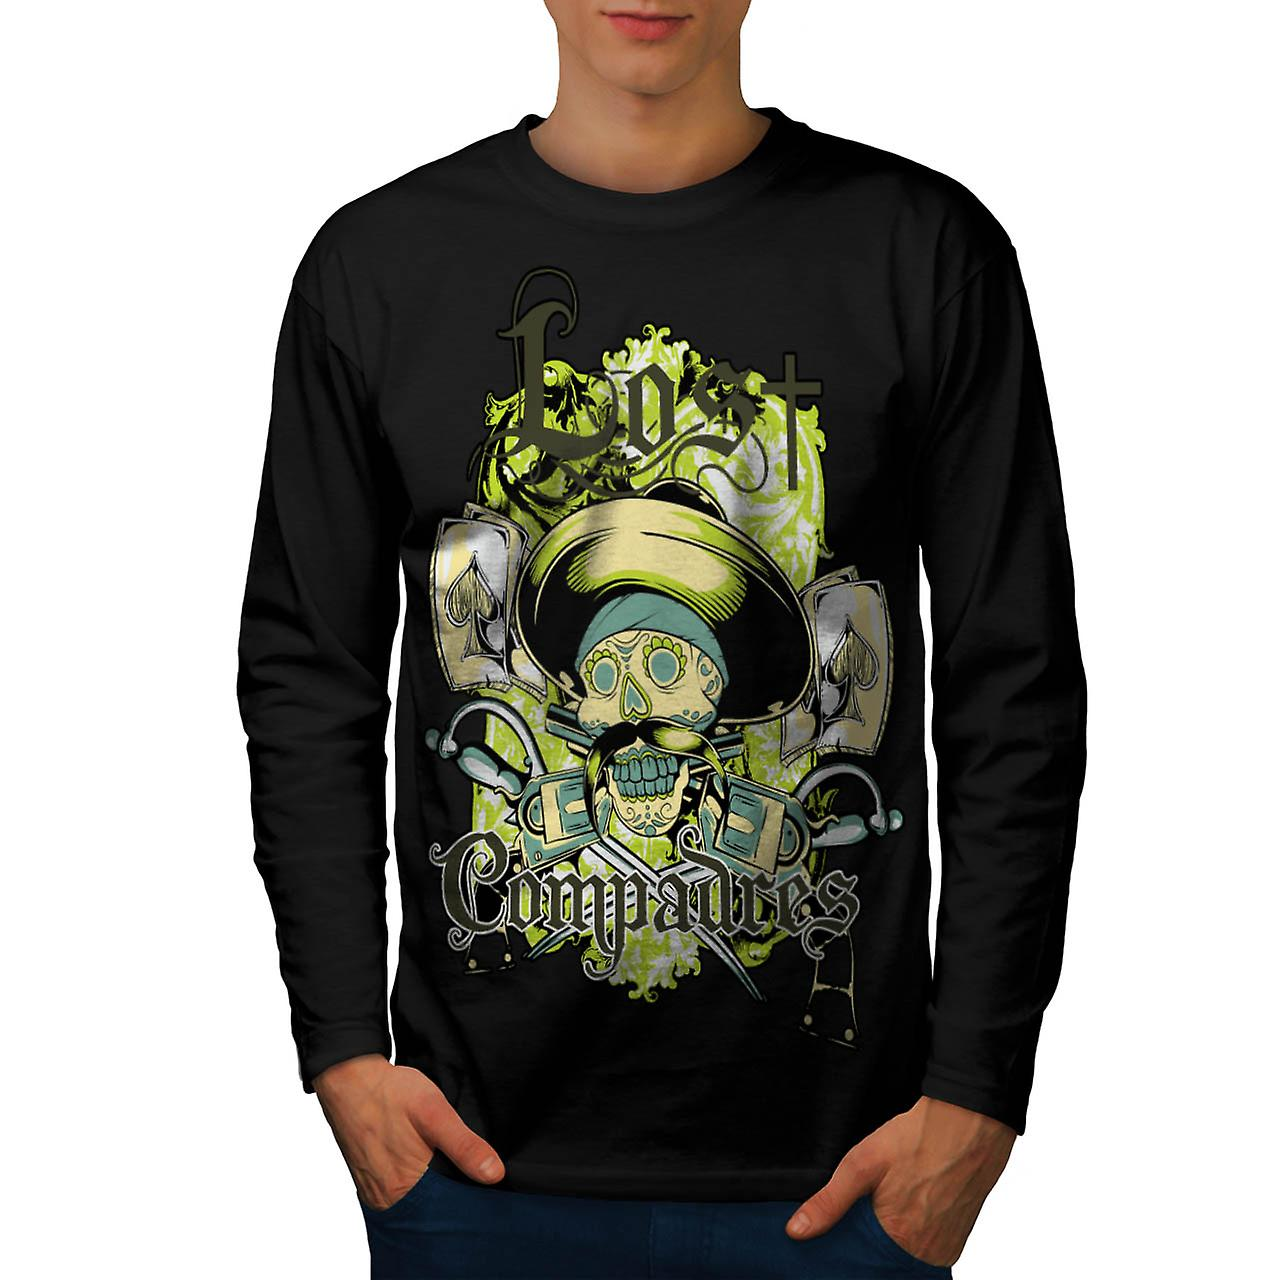 Lost Compadres Team Mexico Man Men Black Long Sleeve T-shirt | Wellcoda